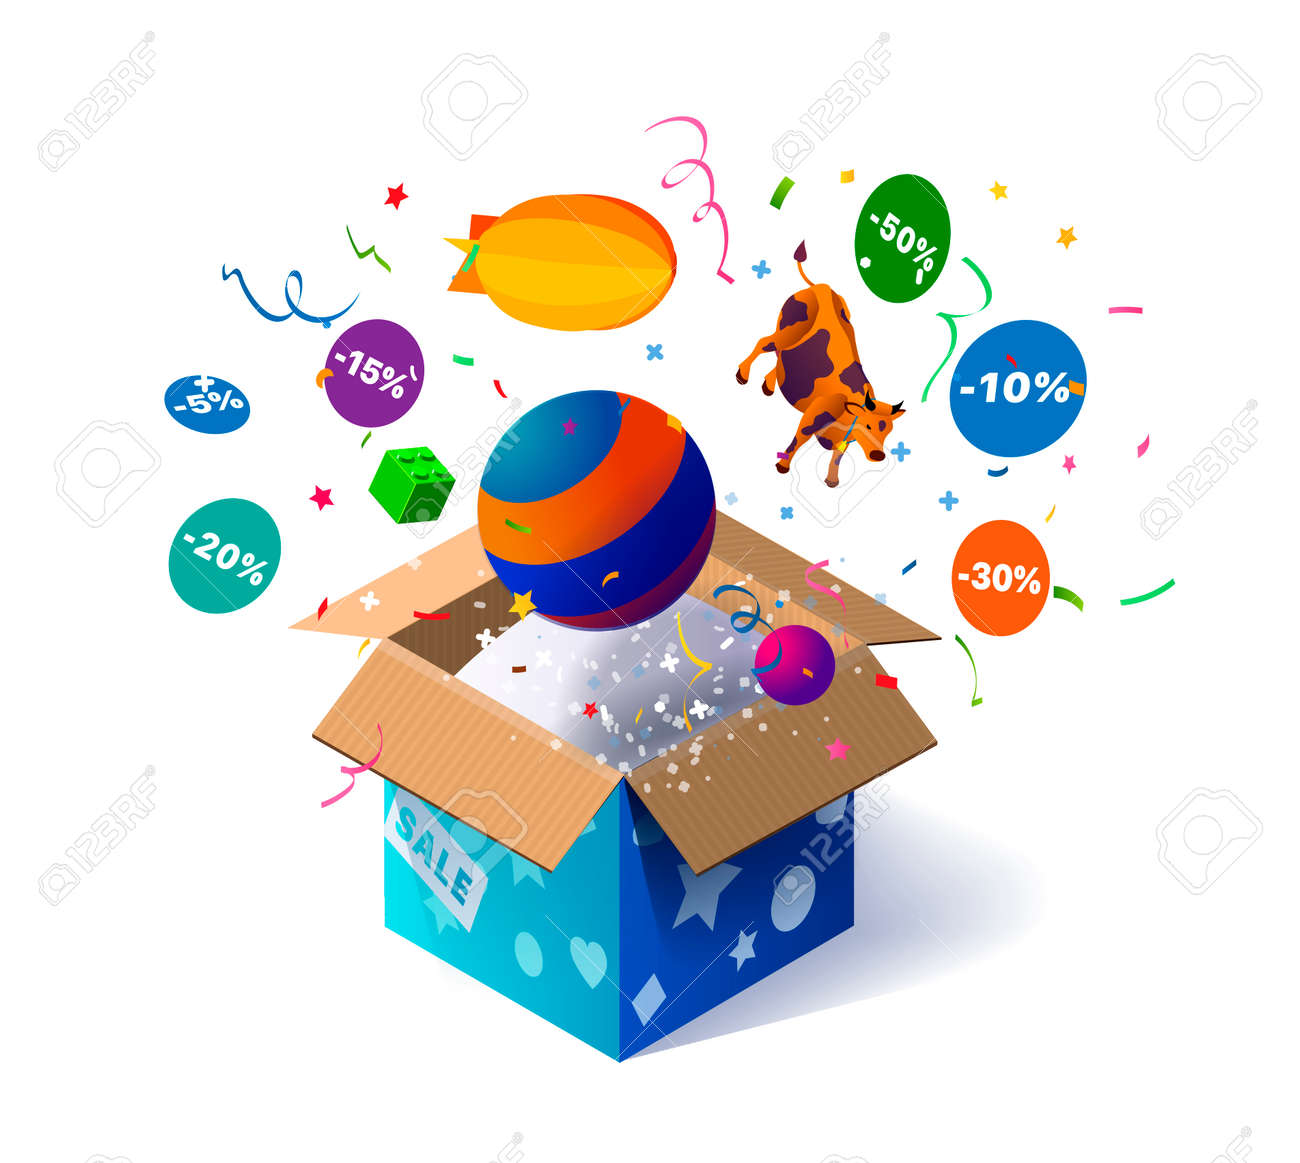 Open cardboard box with kids toys and confetti explosion inside and on white background. Lottery. Promotional banner. Illustration for advertising decoration of stores and for raffle prizes - 140640922